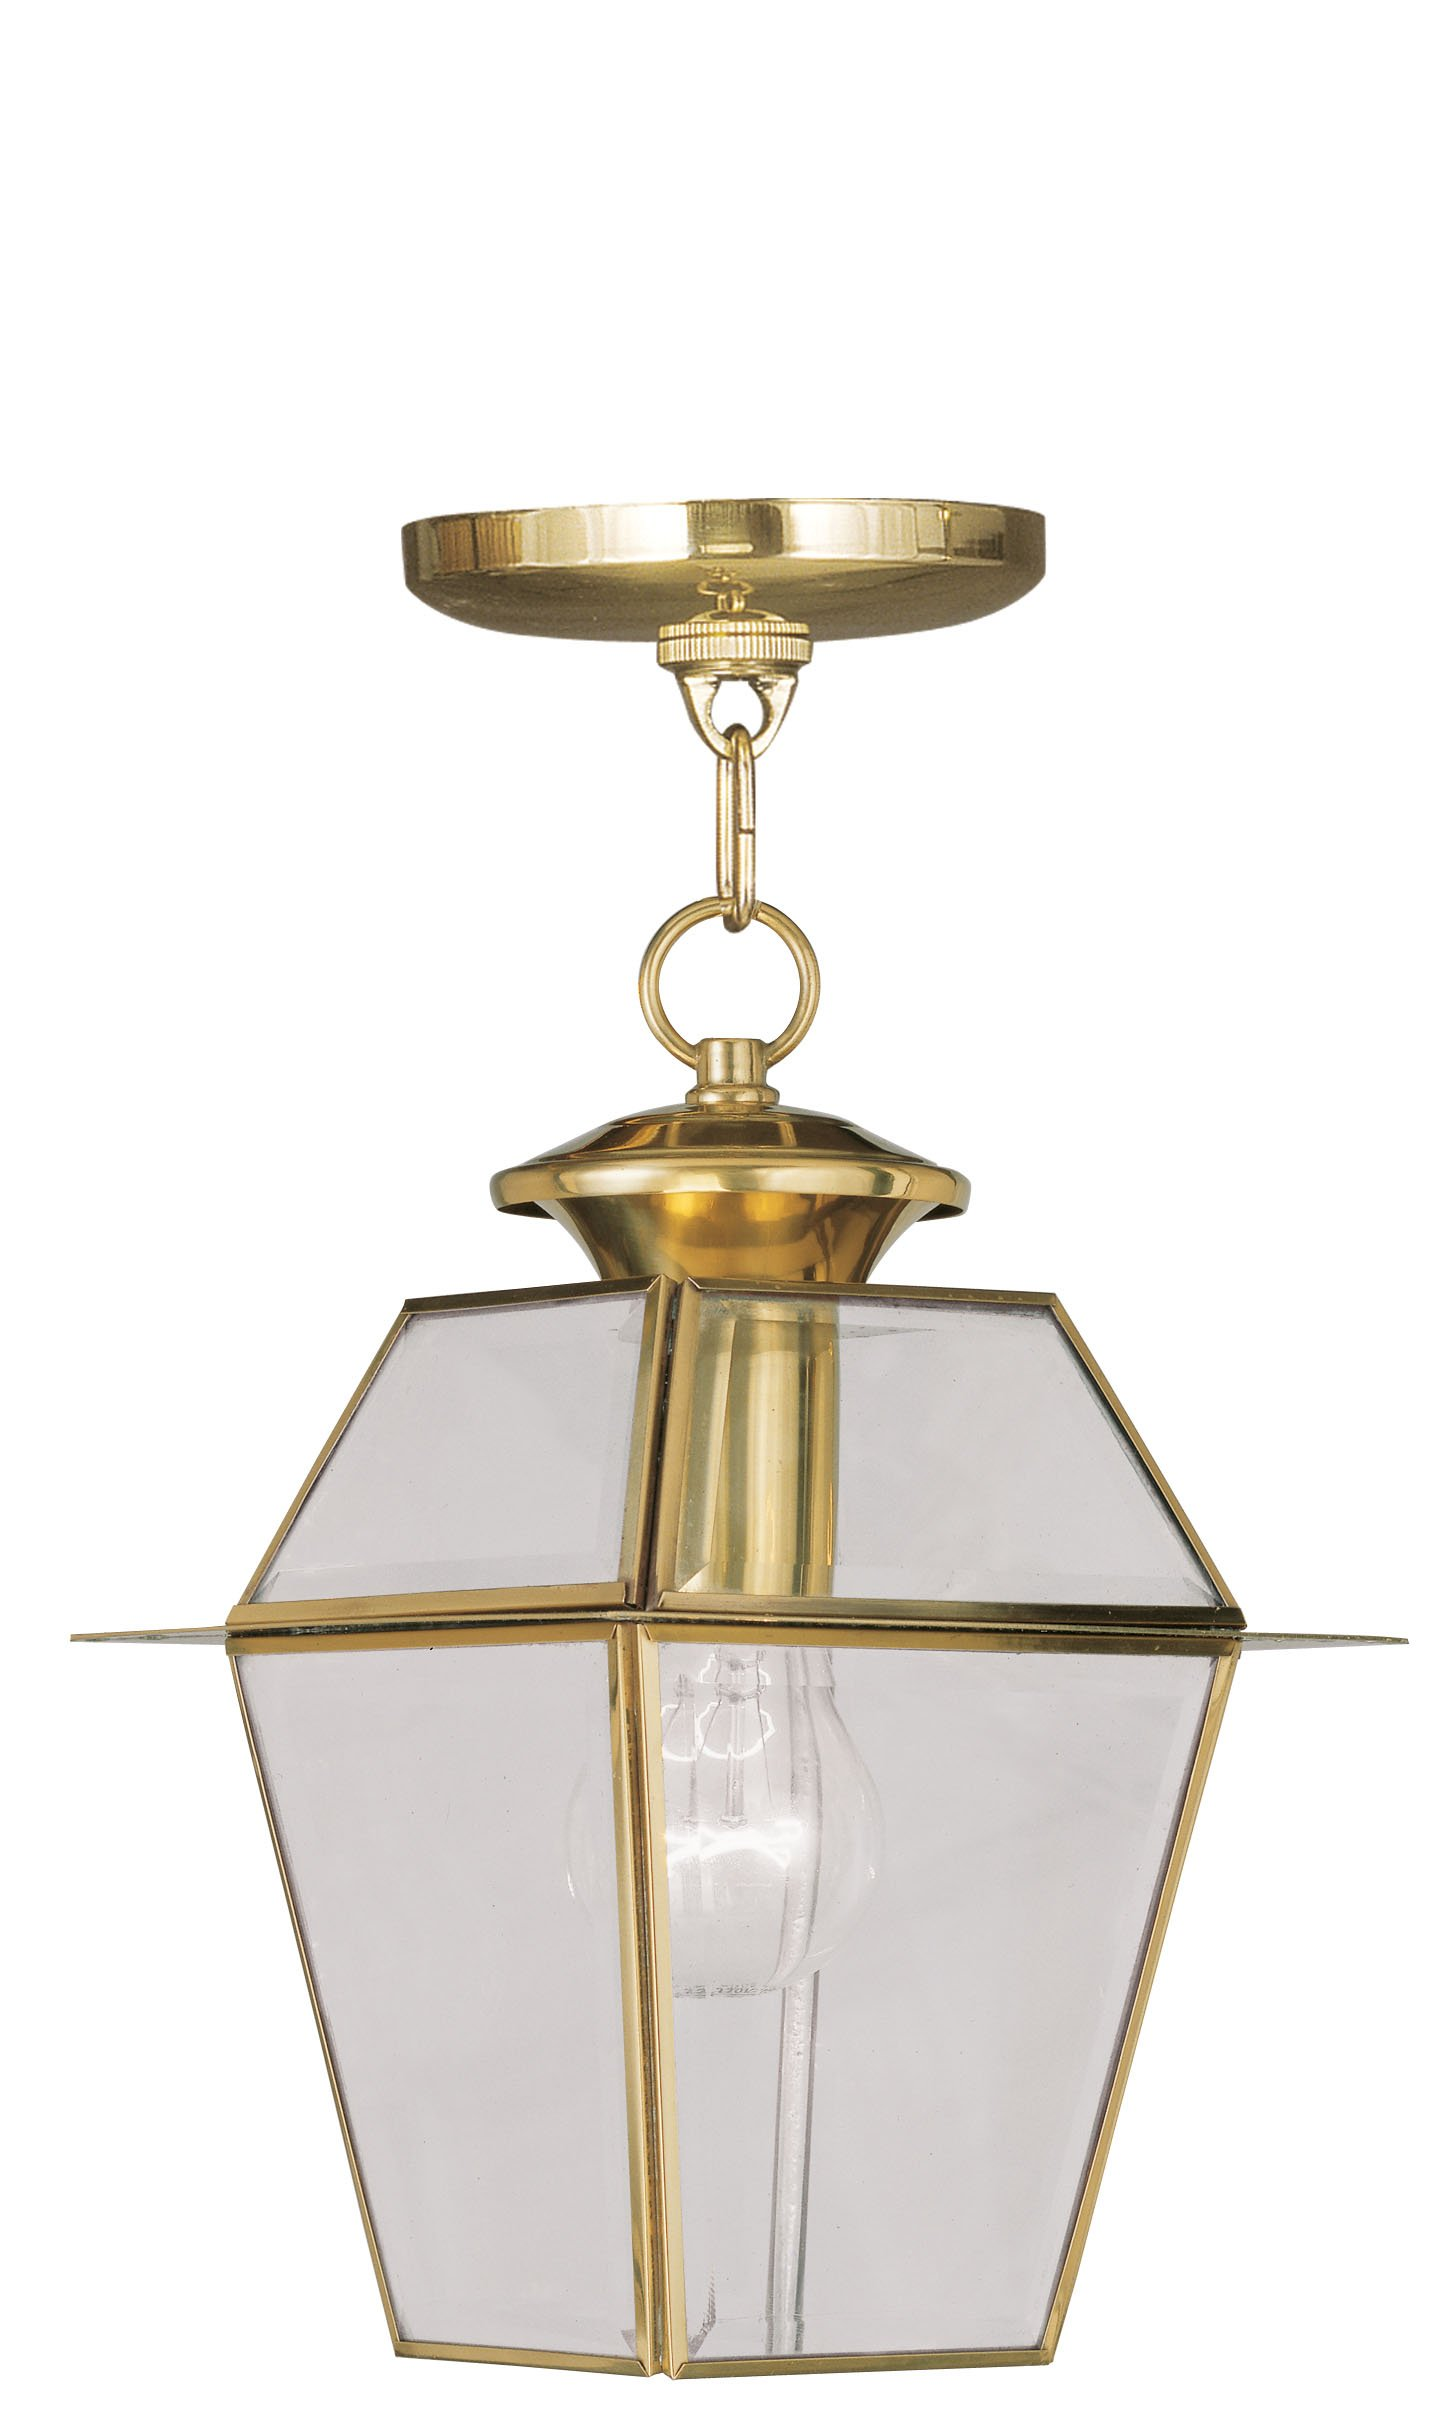 Livex Lighting 2183-02 Westover 1-Light Outdoor Hanging Lantern, Polished Brass by Livex Lighting